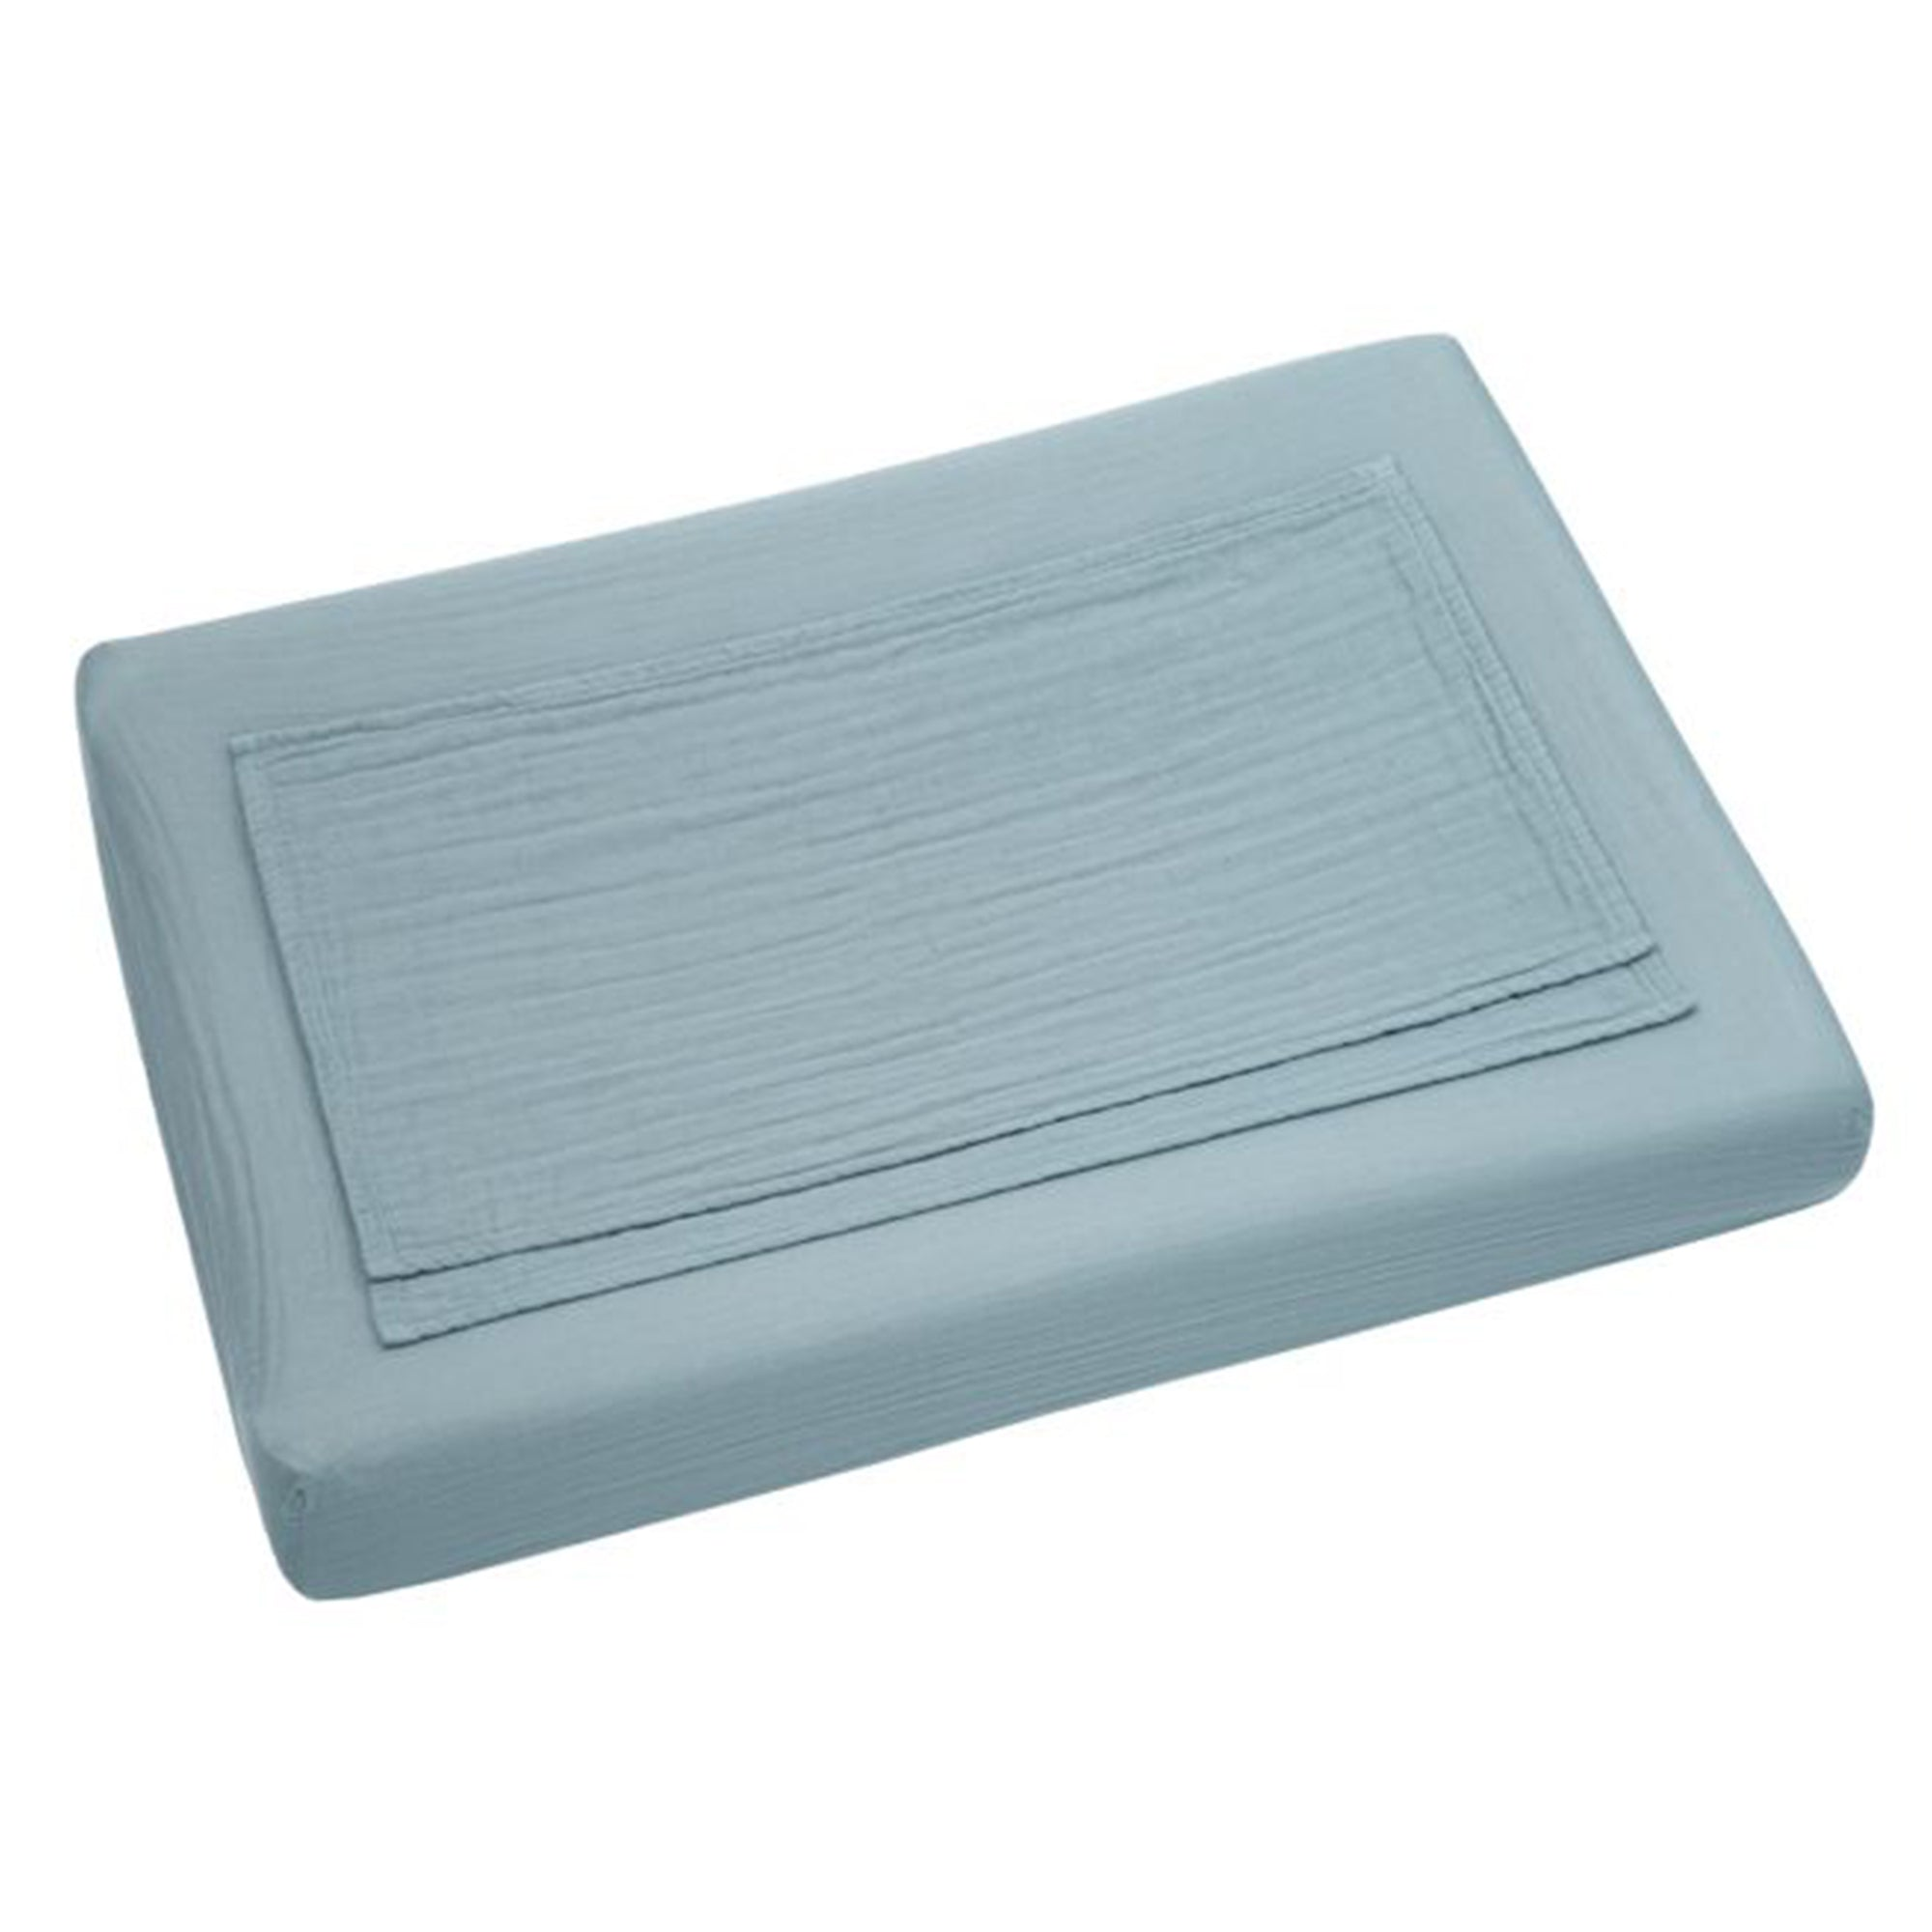 Numero 74 Changing Pad Fitted Cover in Sweet Blue - Scandi Minimal